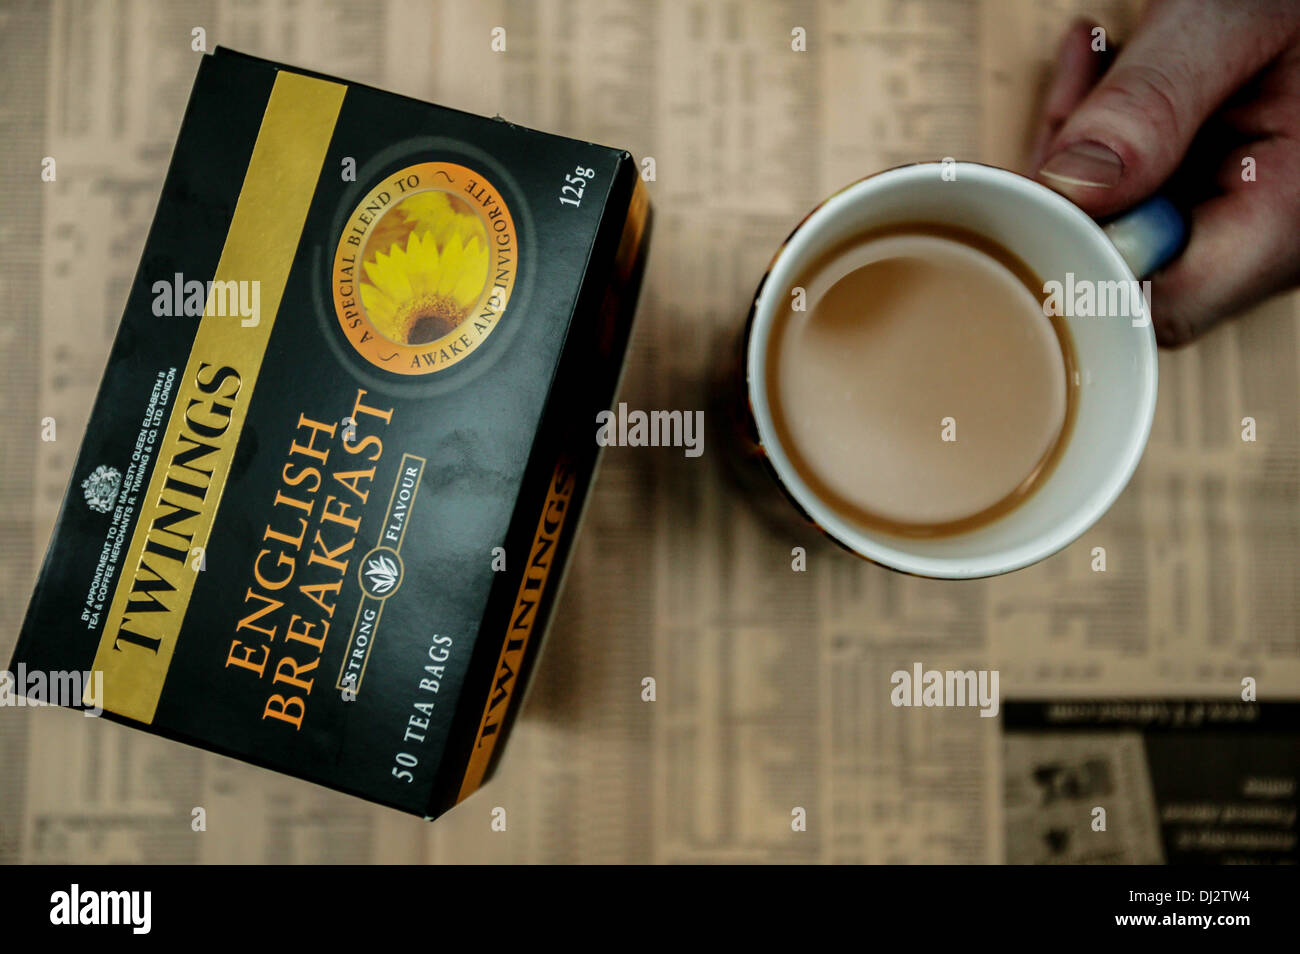 Illustrative image of Twinings Tea; a product of AB Foods. - Stock Image